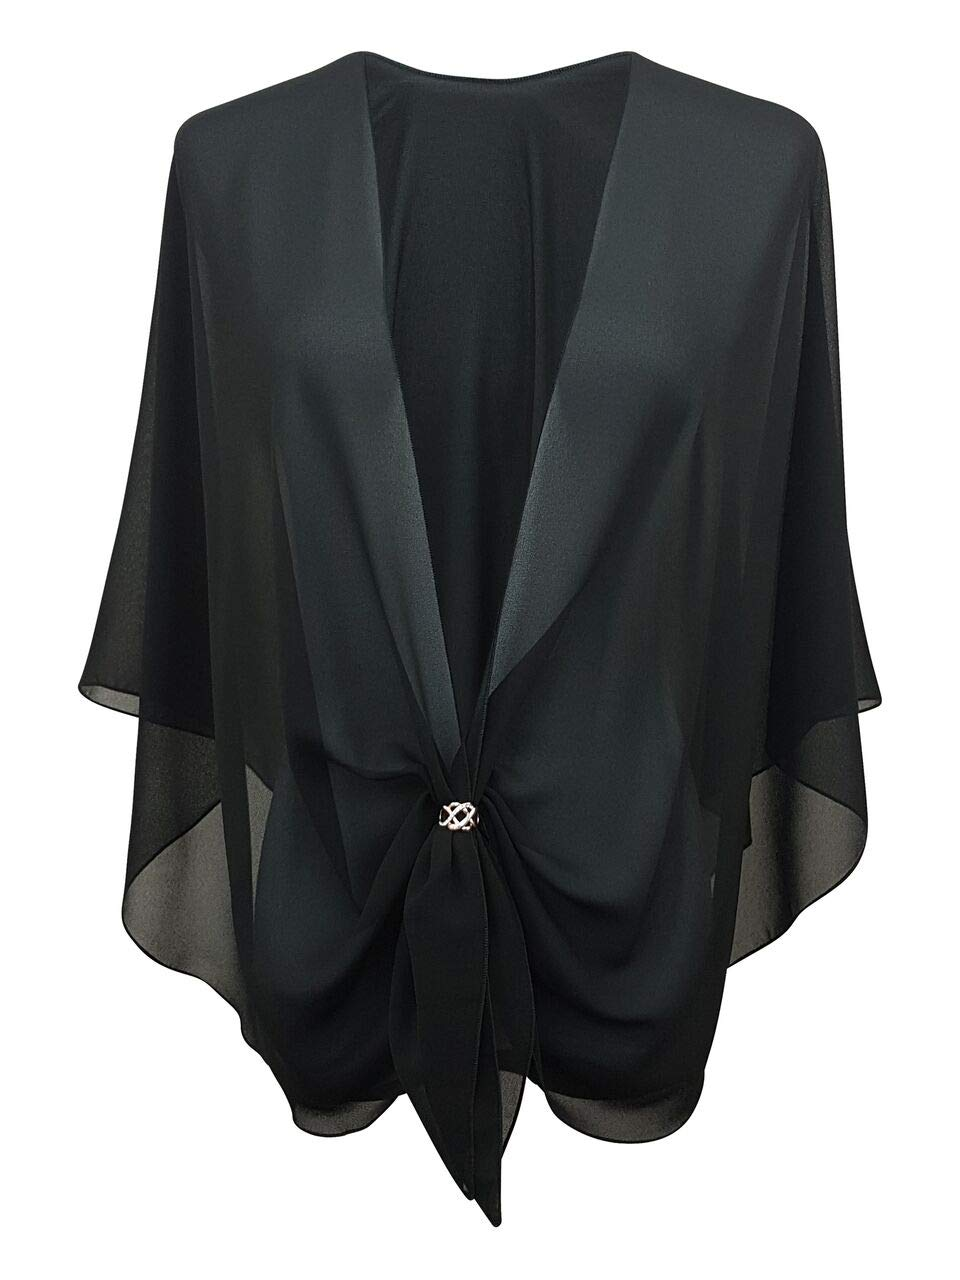 eXcaped Womens Evening Wrap Sheer Chiffon Cape and Silver Scarf Ring Set -Black by eXcaped